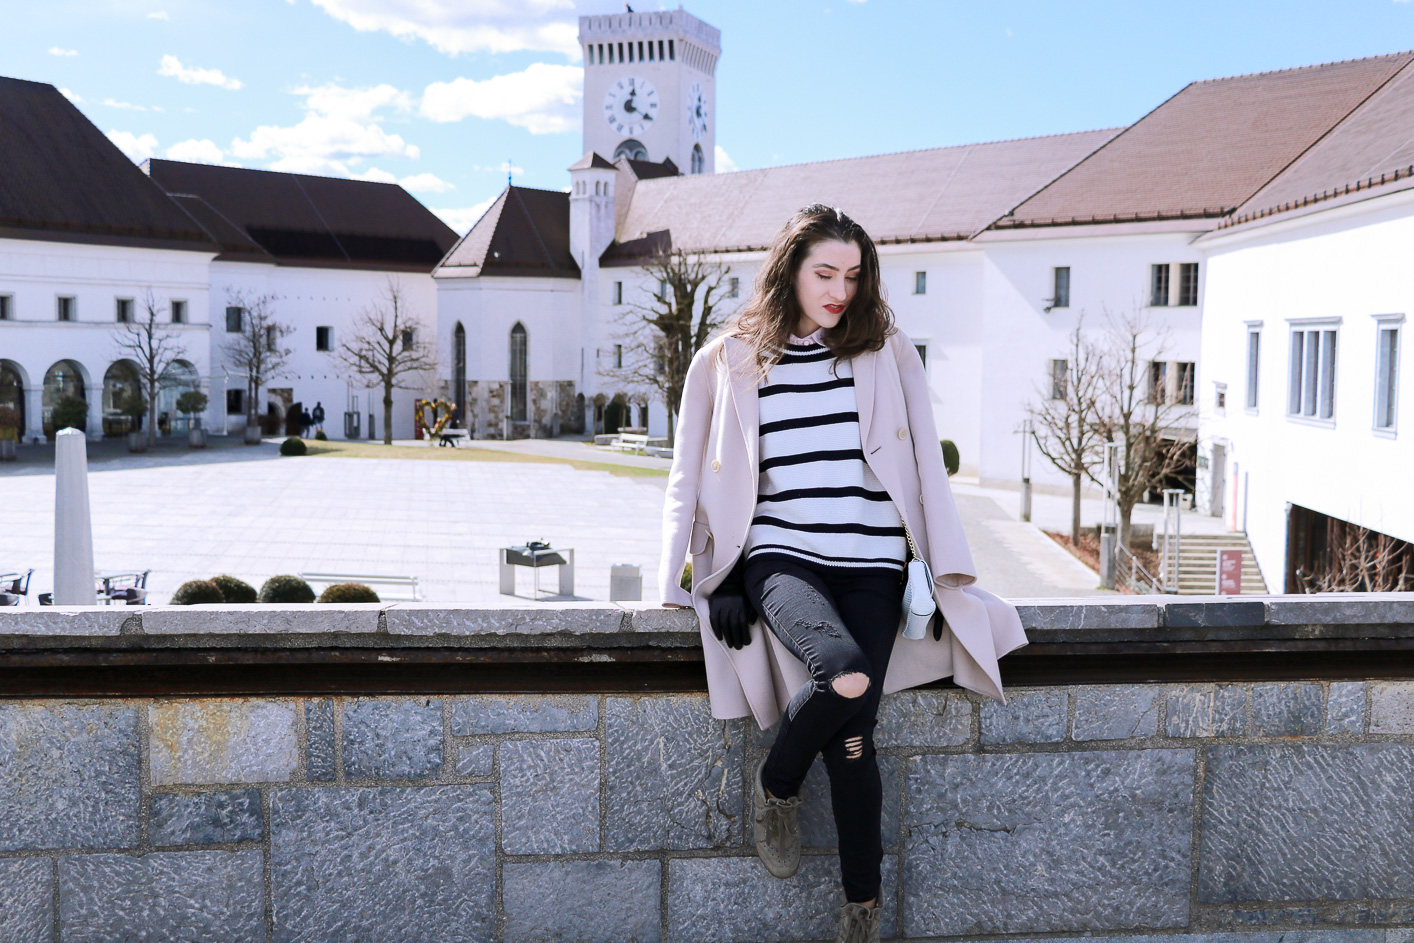 Fashion blogger Veronika Lipar of Brunette From Wall Street sharing how to be a stylish tourist